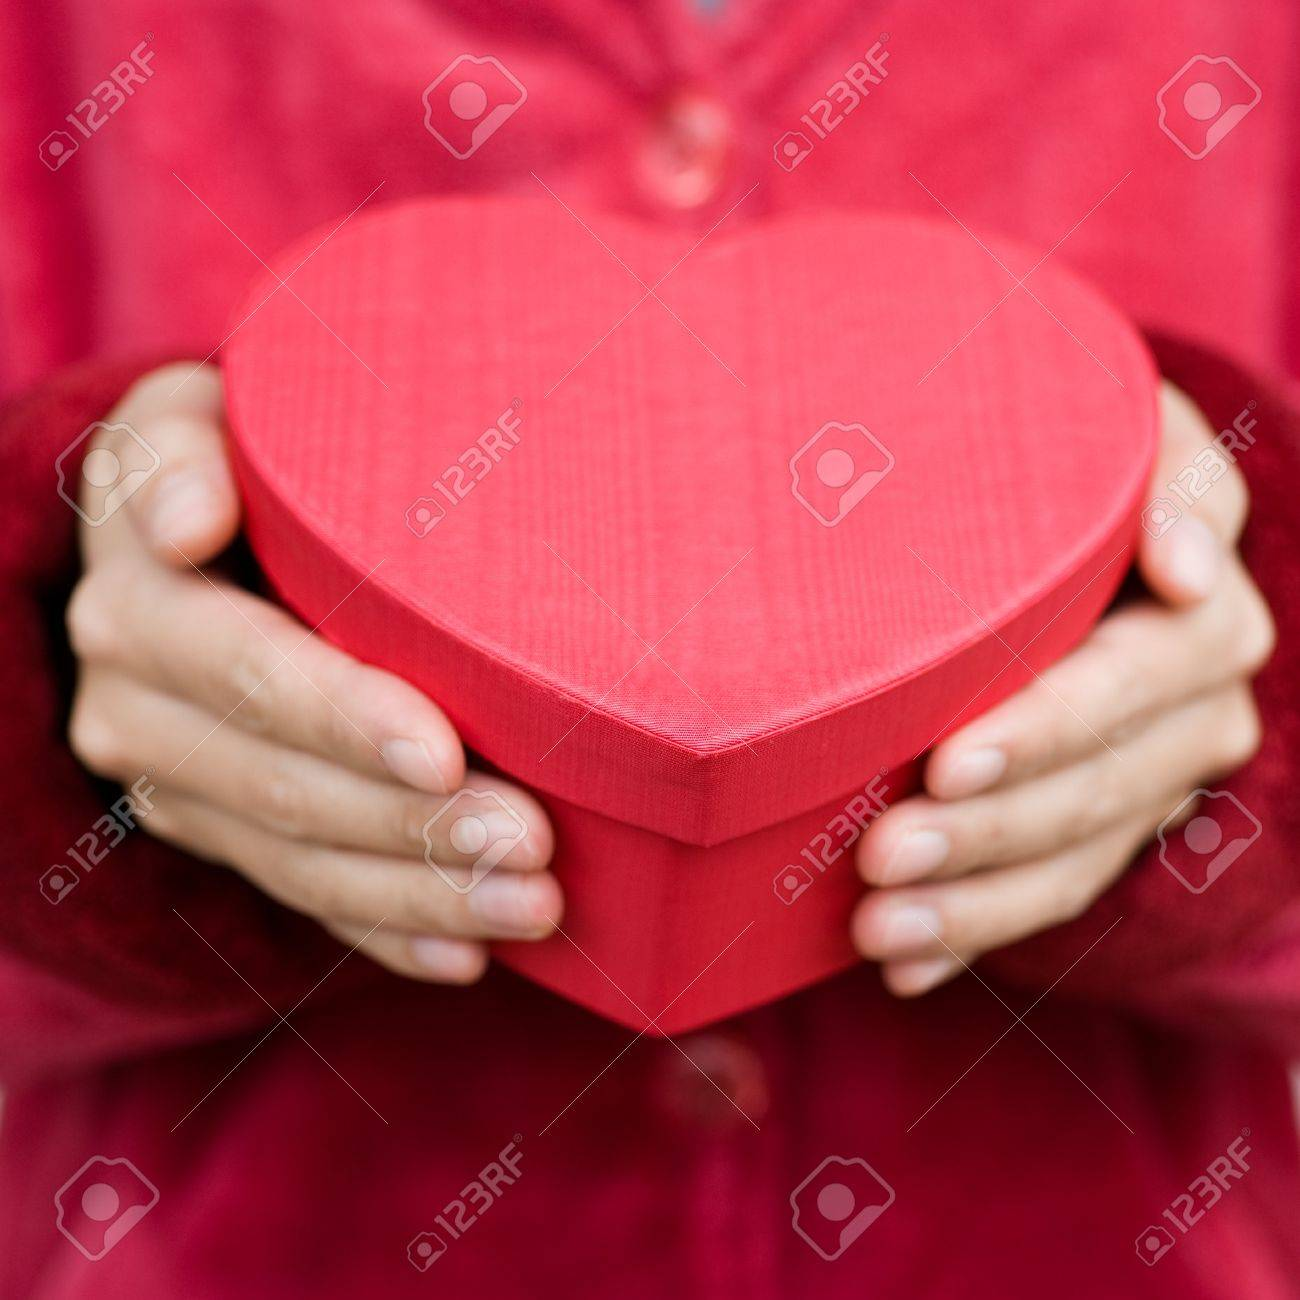 Heart Shaped Gift Box In Hands. Stock Photo, Picture And Royalty ...